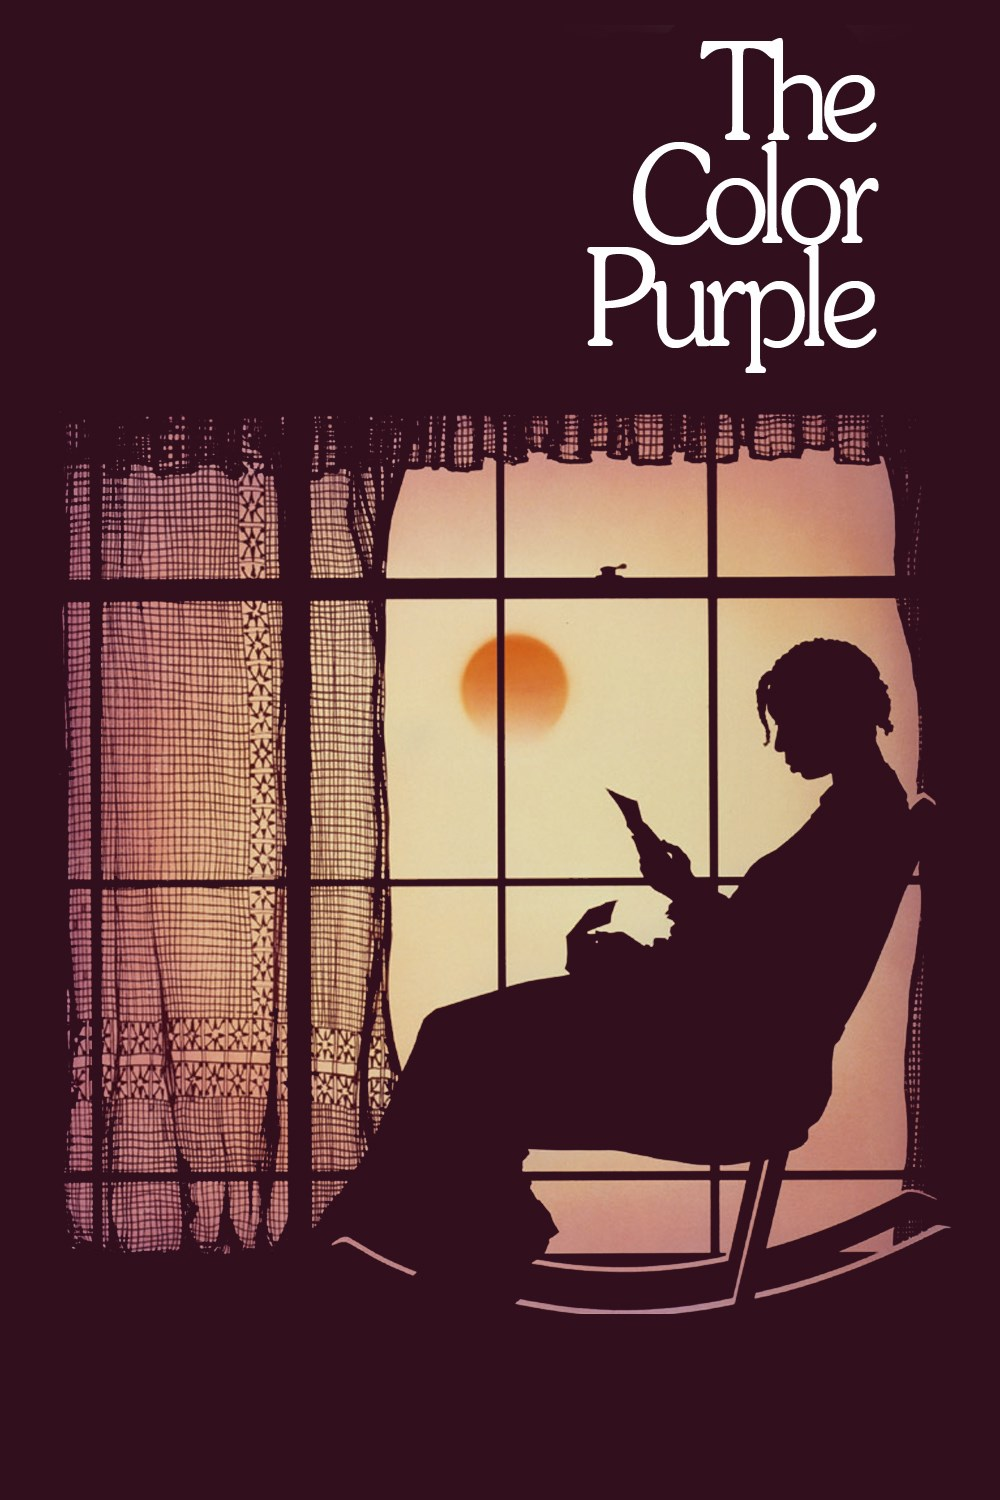 the personalities of celie in the color purple a novel by alice walker The color purple a novel alice walker winner of the pulitzer prize and the national book award 15 east 26th street, new york, ny 10010  celie: the novel's heroine doris baines: the wealthy missionary nettie meets on a ship  what are the traits of their formal and informal uses of.